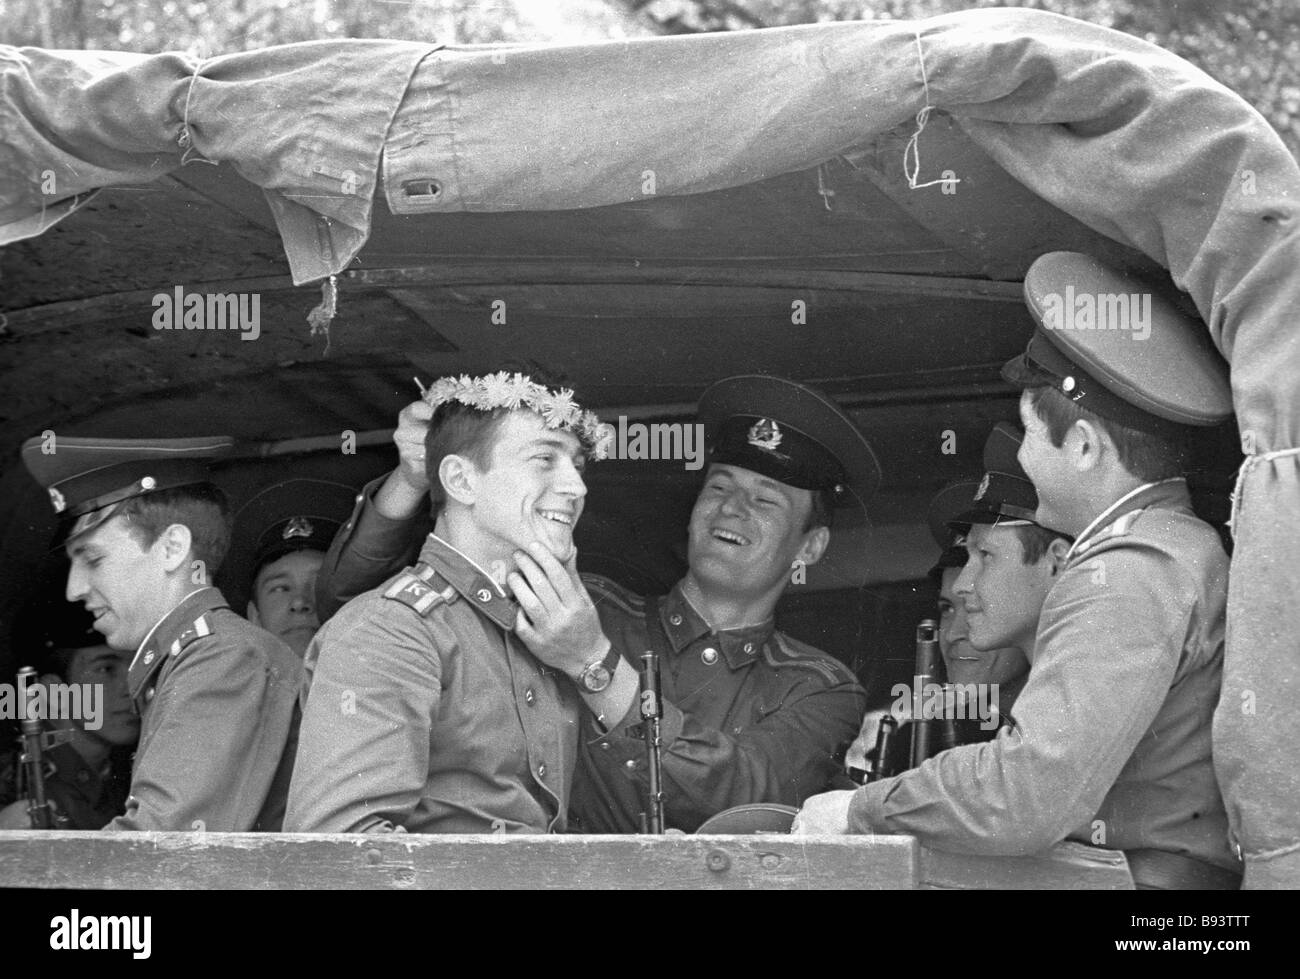 Cadets of the Moscow Mossovet Border Guards Command Higher School of the USSR KGB going to the exercises - Stock Image